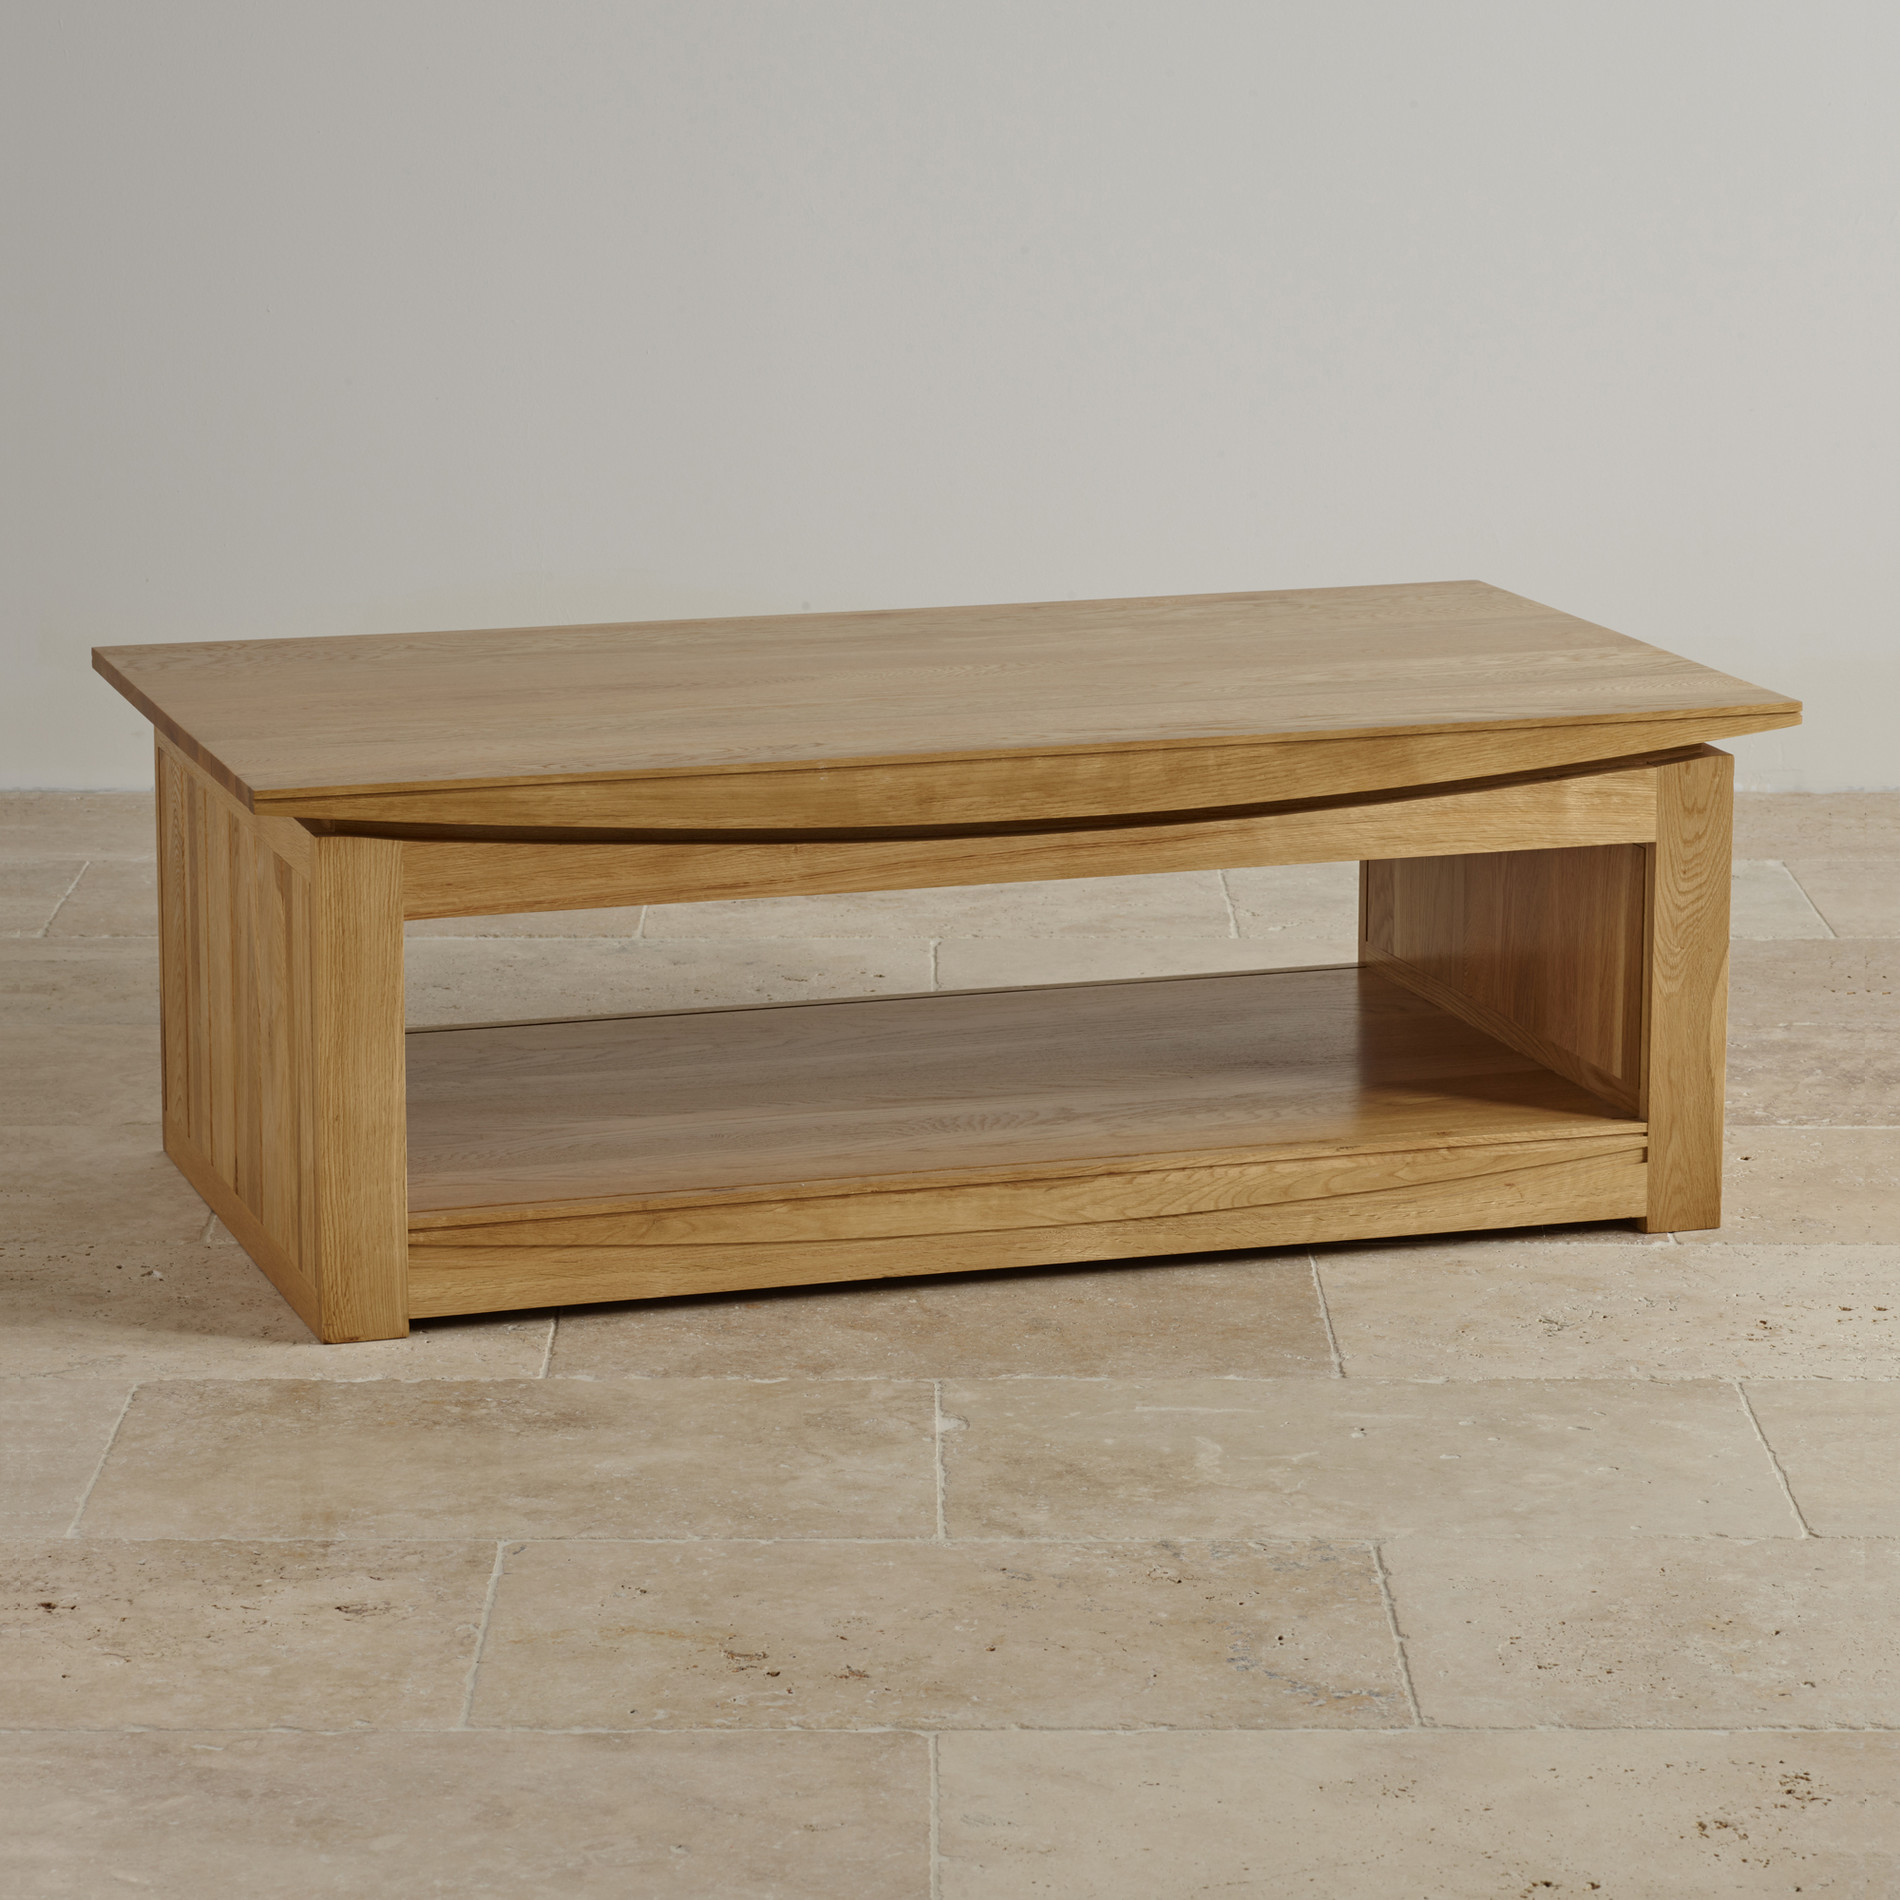 Oval Oak Coffee Table Uk: Tokyo Natural Solid Oak Large Coffee Table By Oak